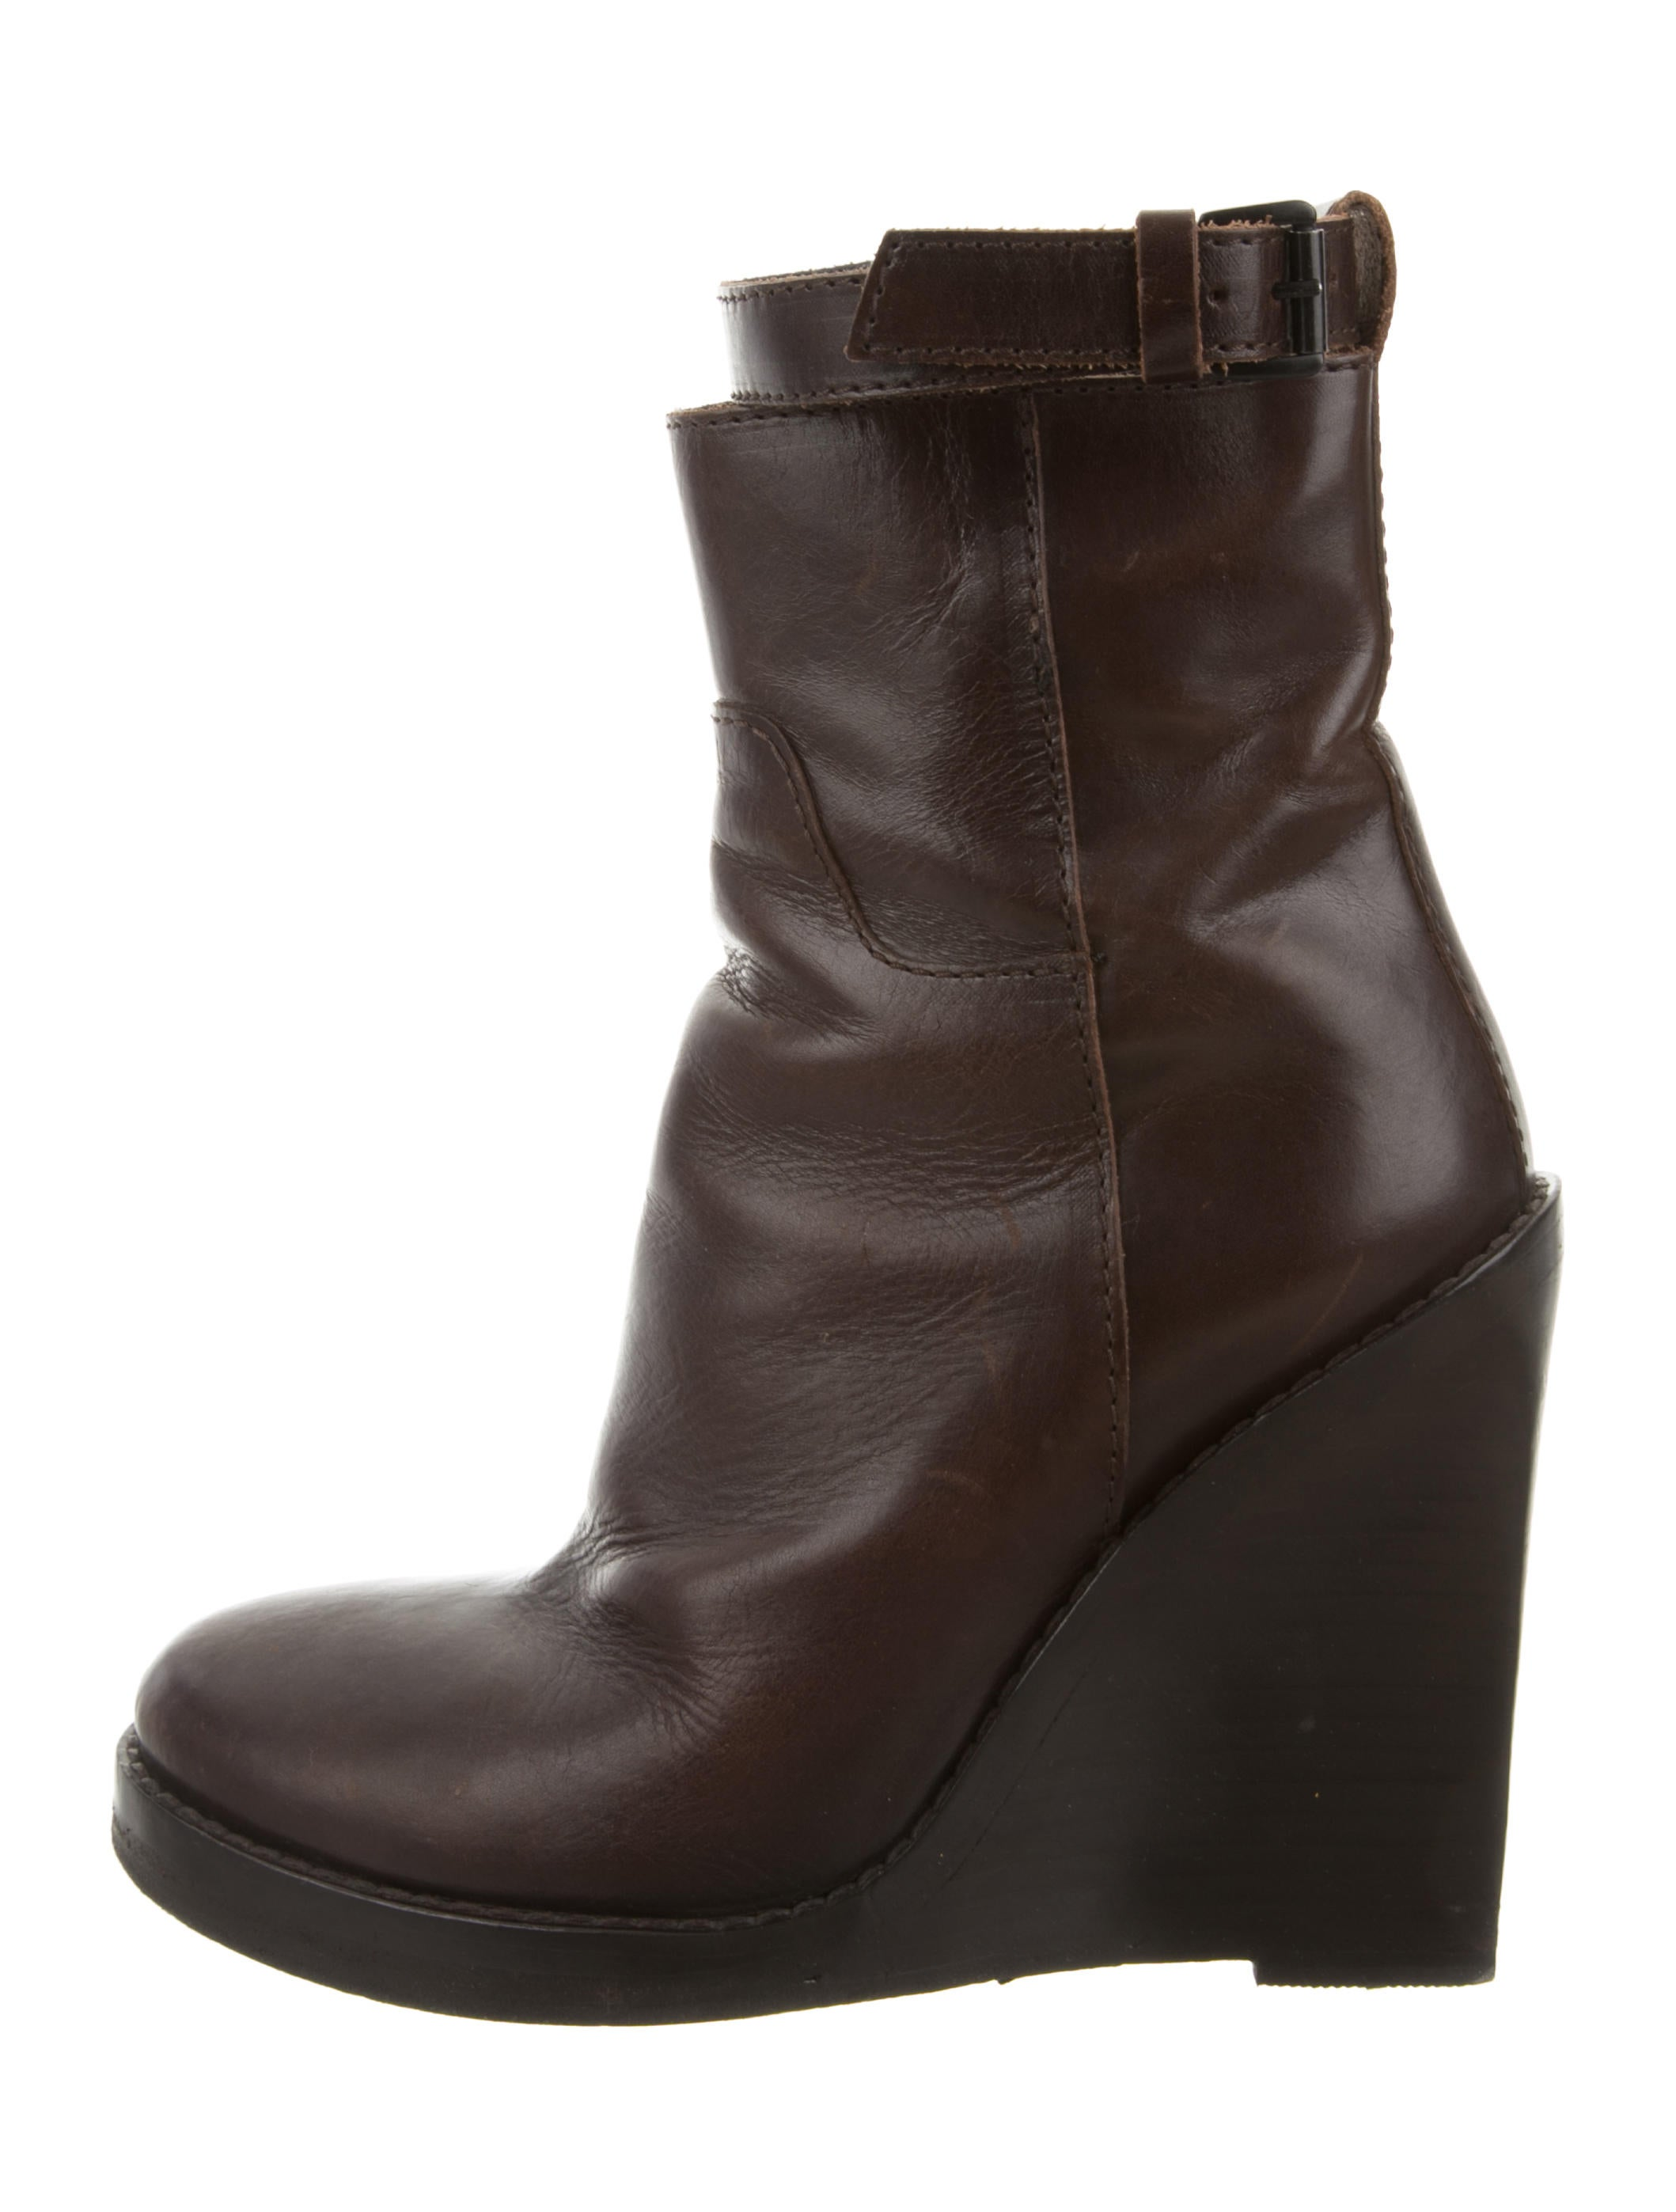 demeulemeester leather wedge ankle boots shoes